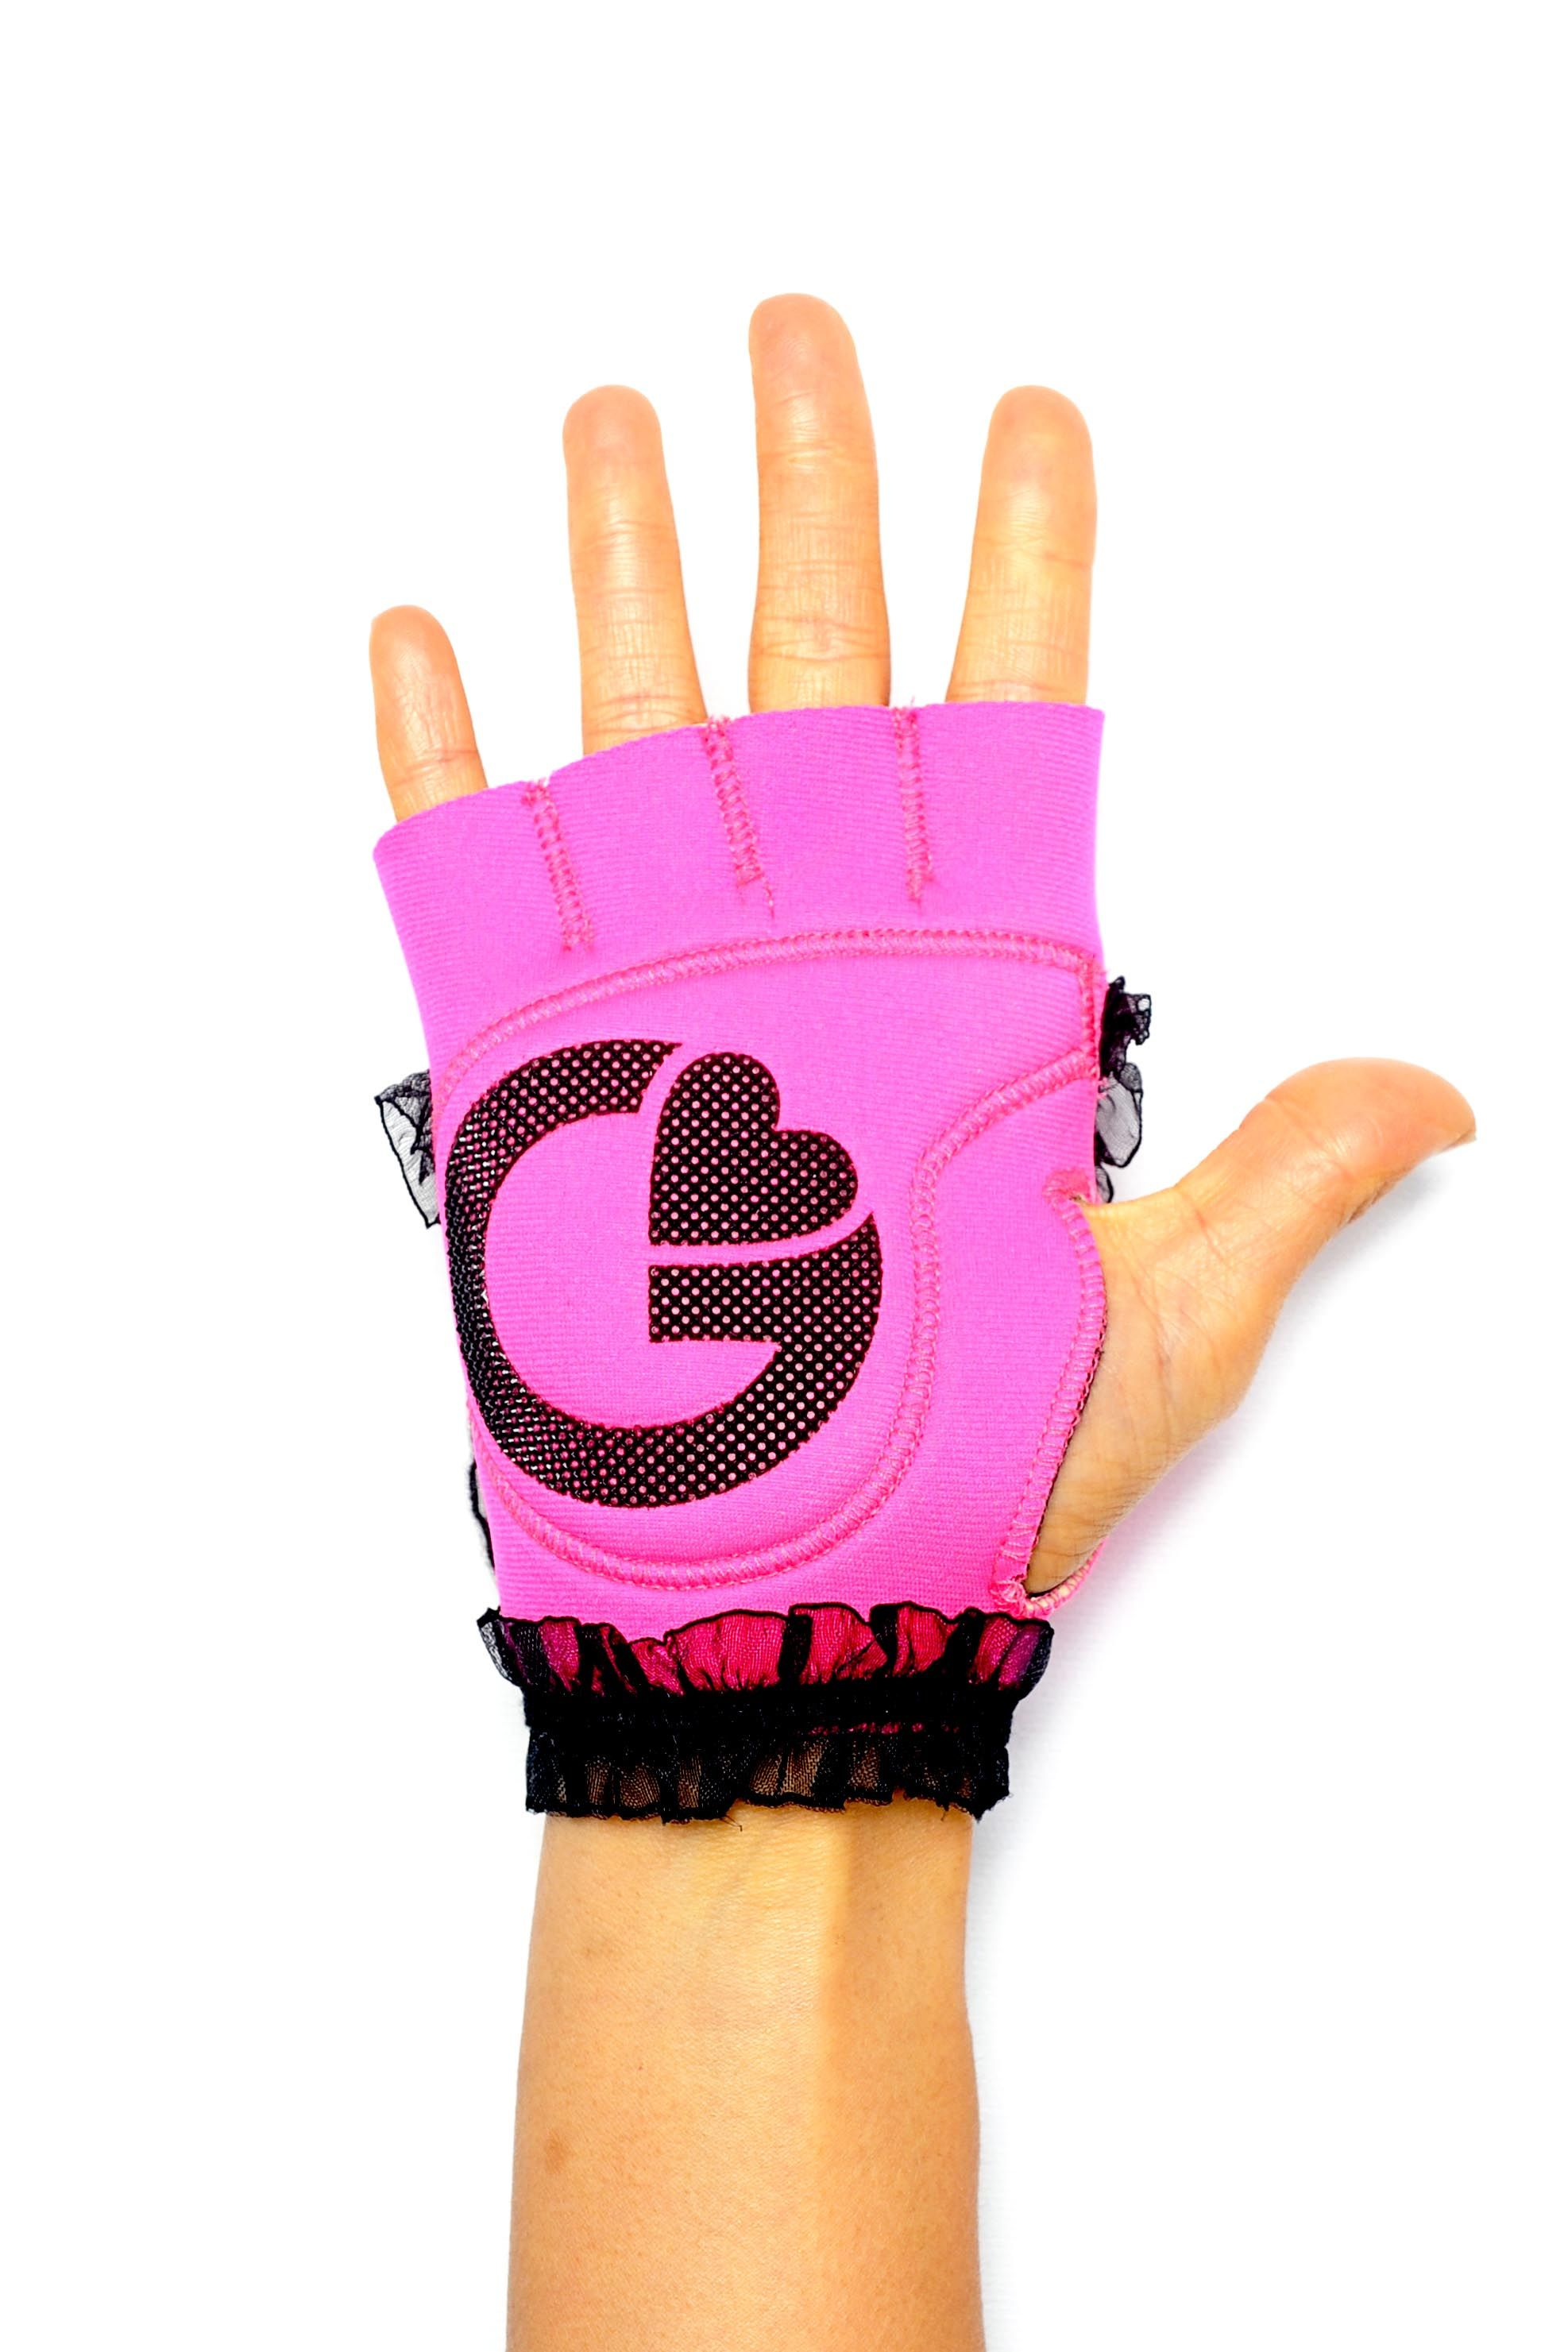 78ccb081a3ea1 The best women s workout glove - Make a bright and bold statement!  45